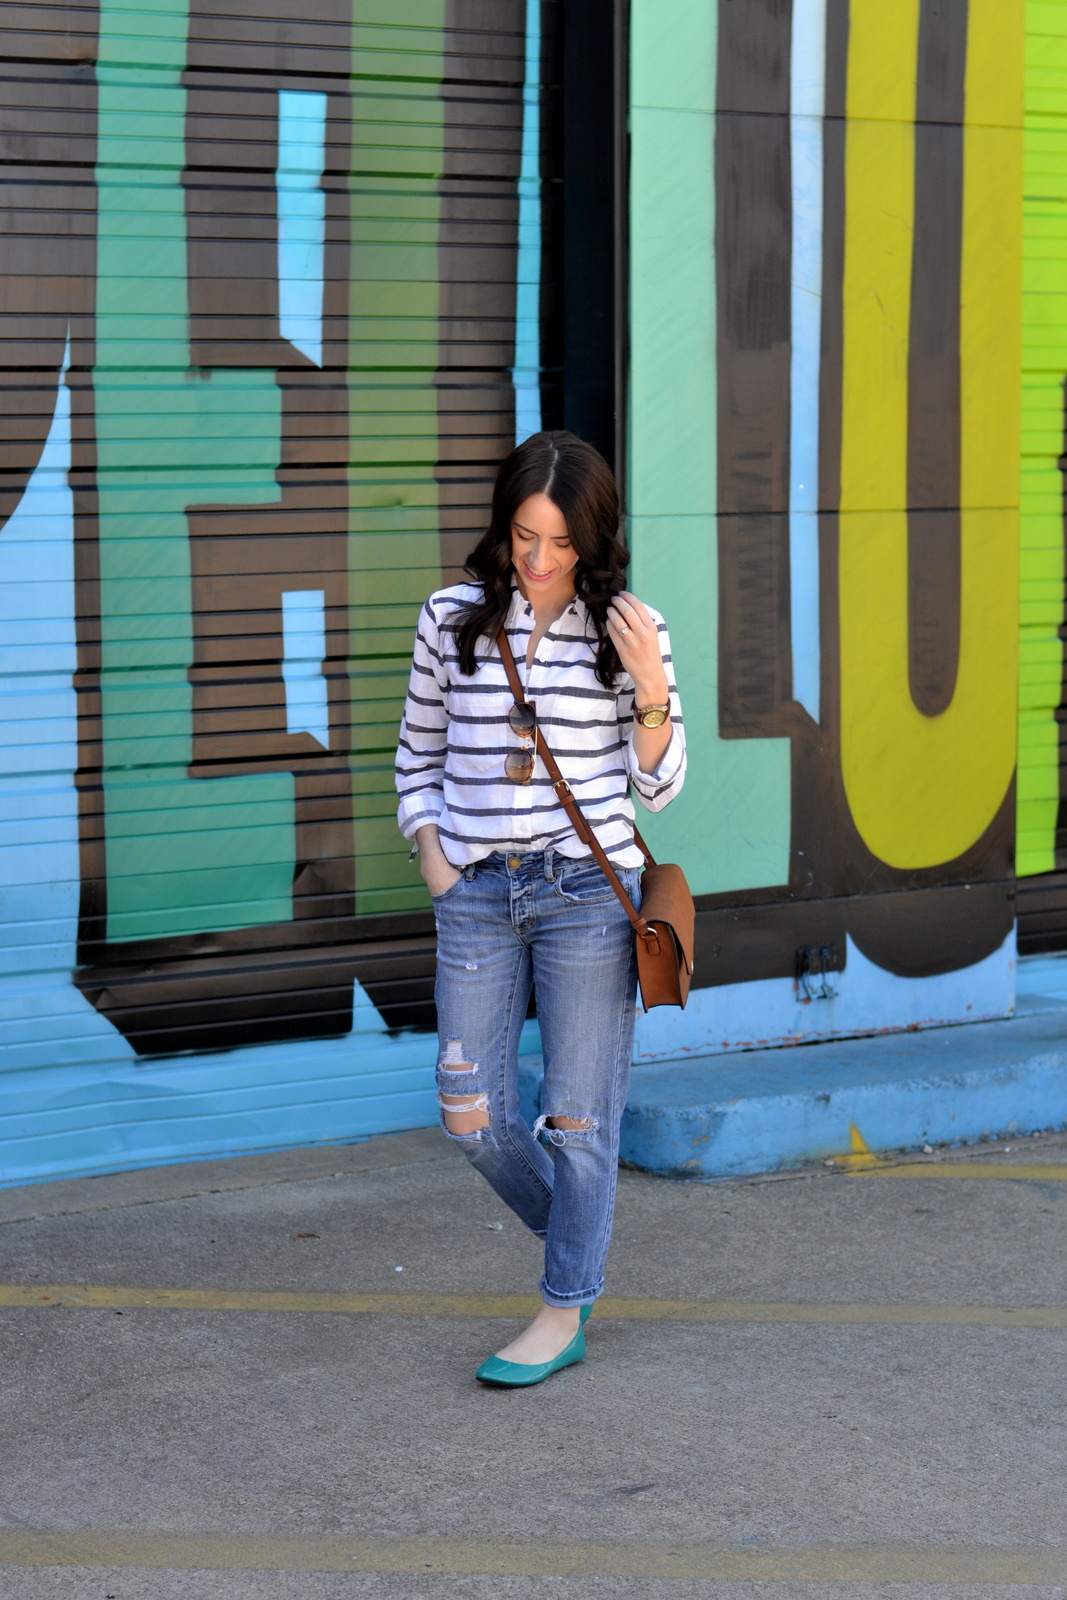 Casual outfit with boyfriend jeans and flats